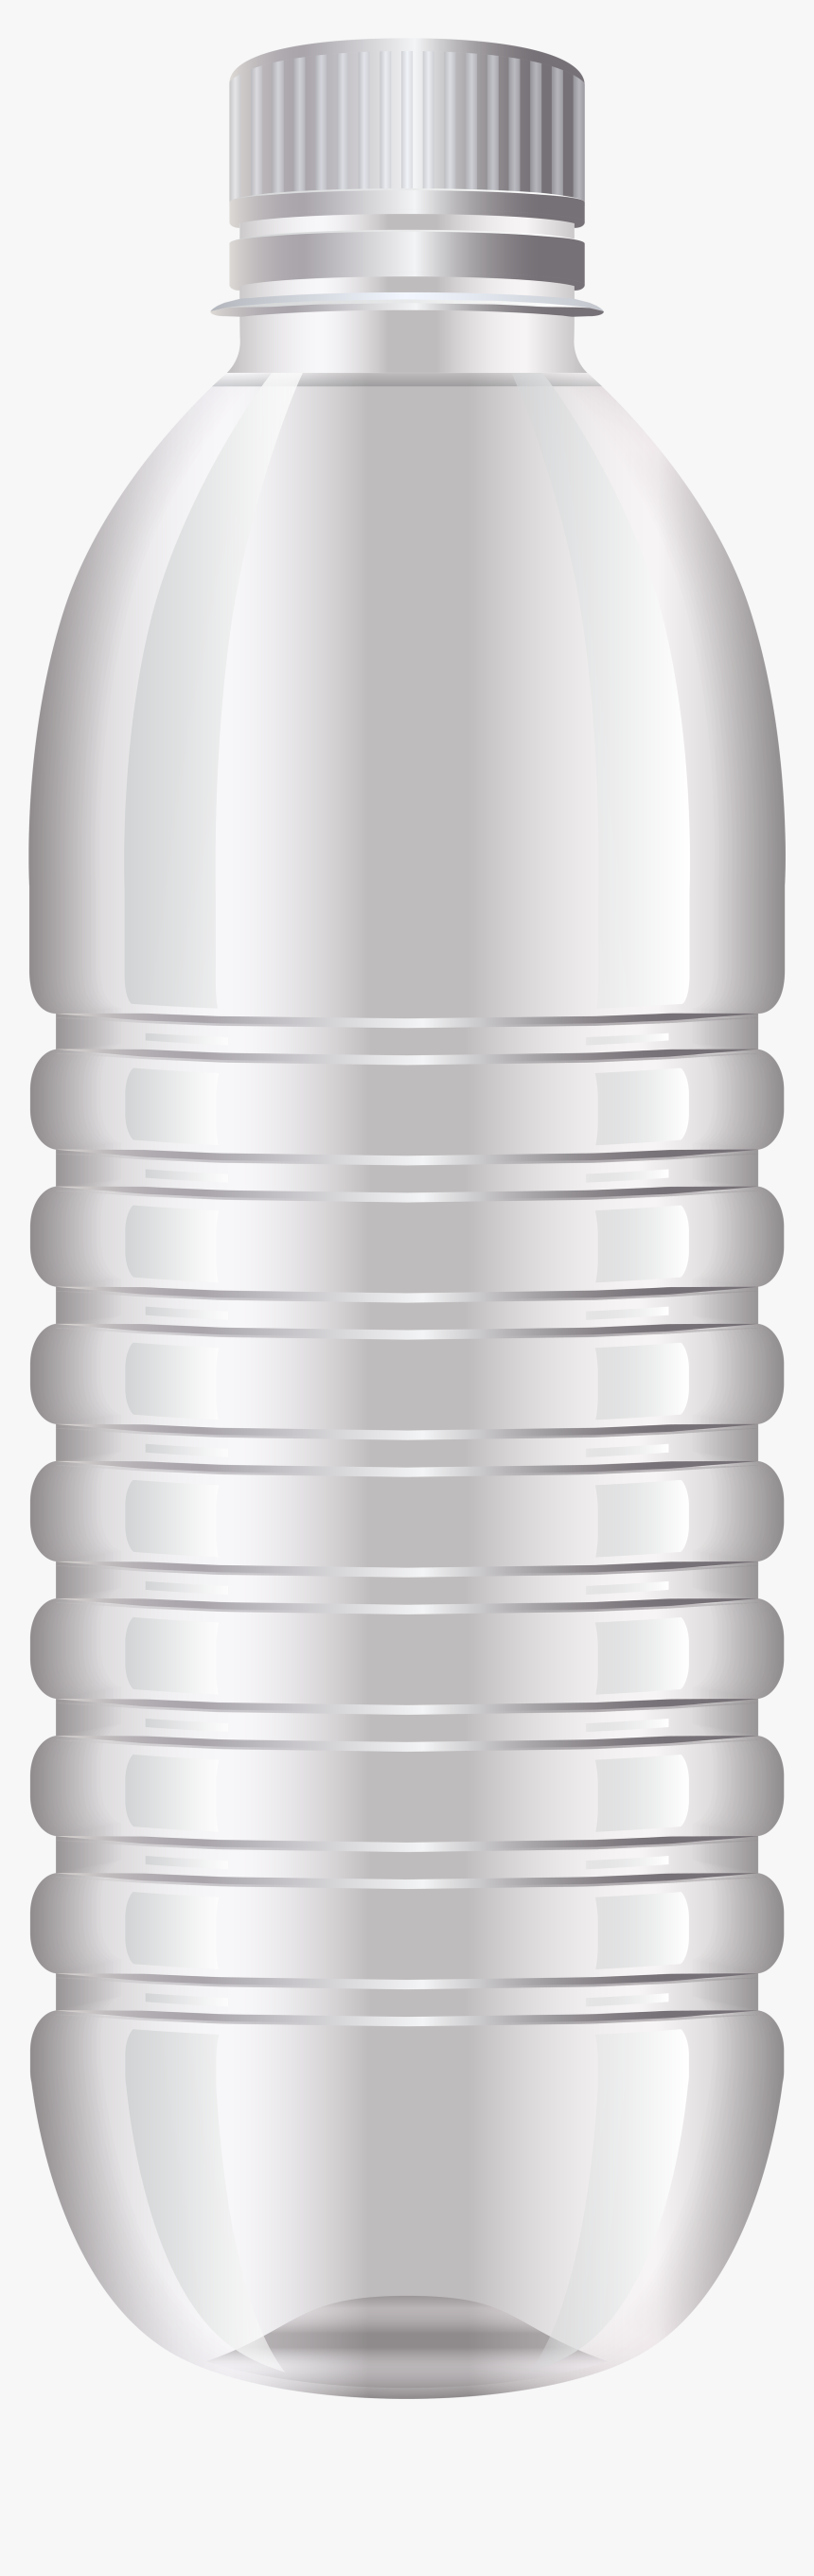 Water Bottle Png Clip Art - Water Bottle Png White Cap, Transparent Png, Free Download